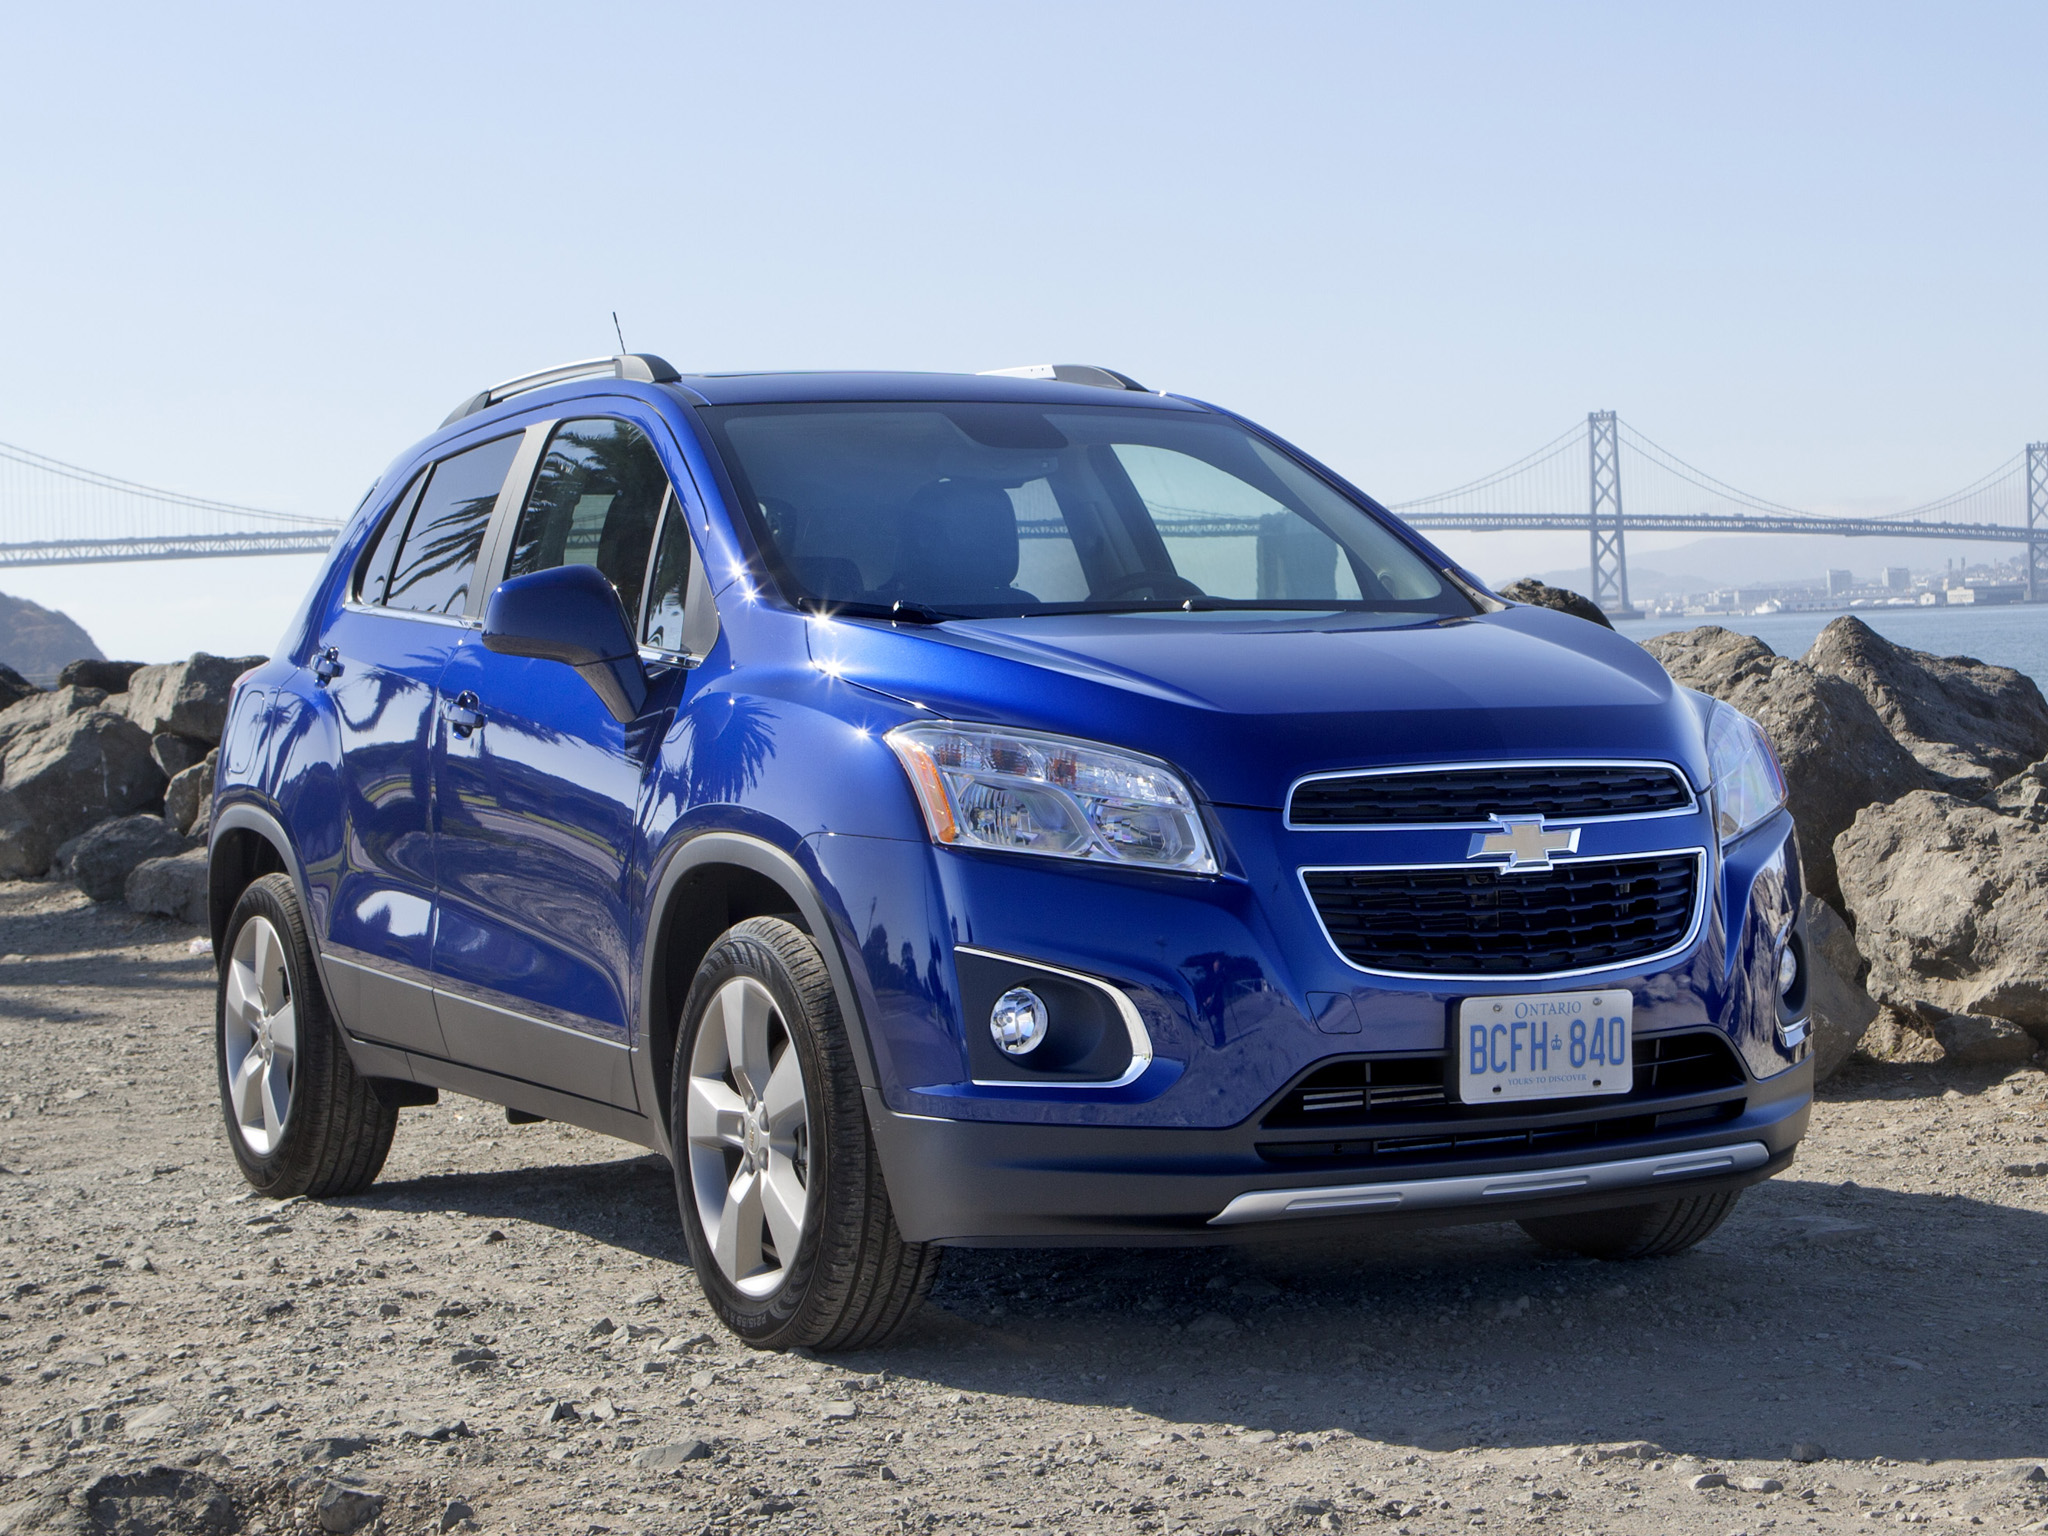 Chevrolet Tracker Chega No Primeiro Semestre De 2013 High Resolution Wallpaper Free Wallpaper